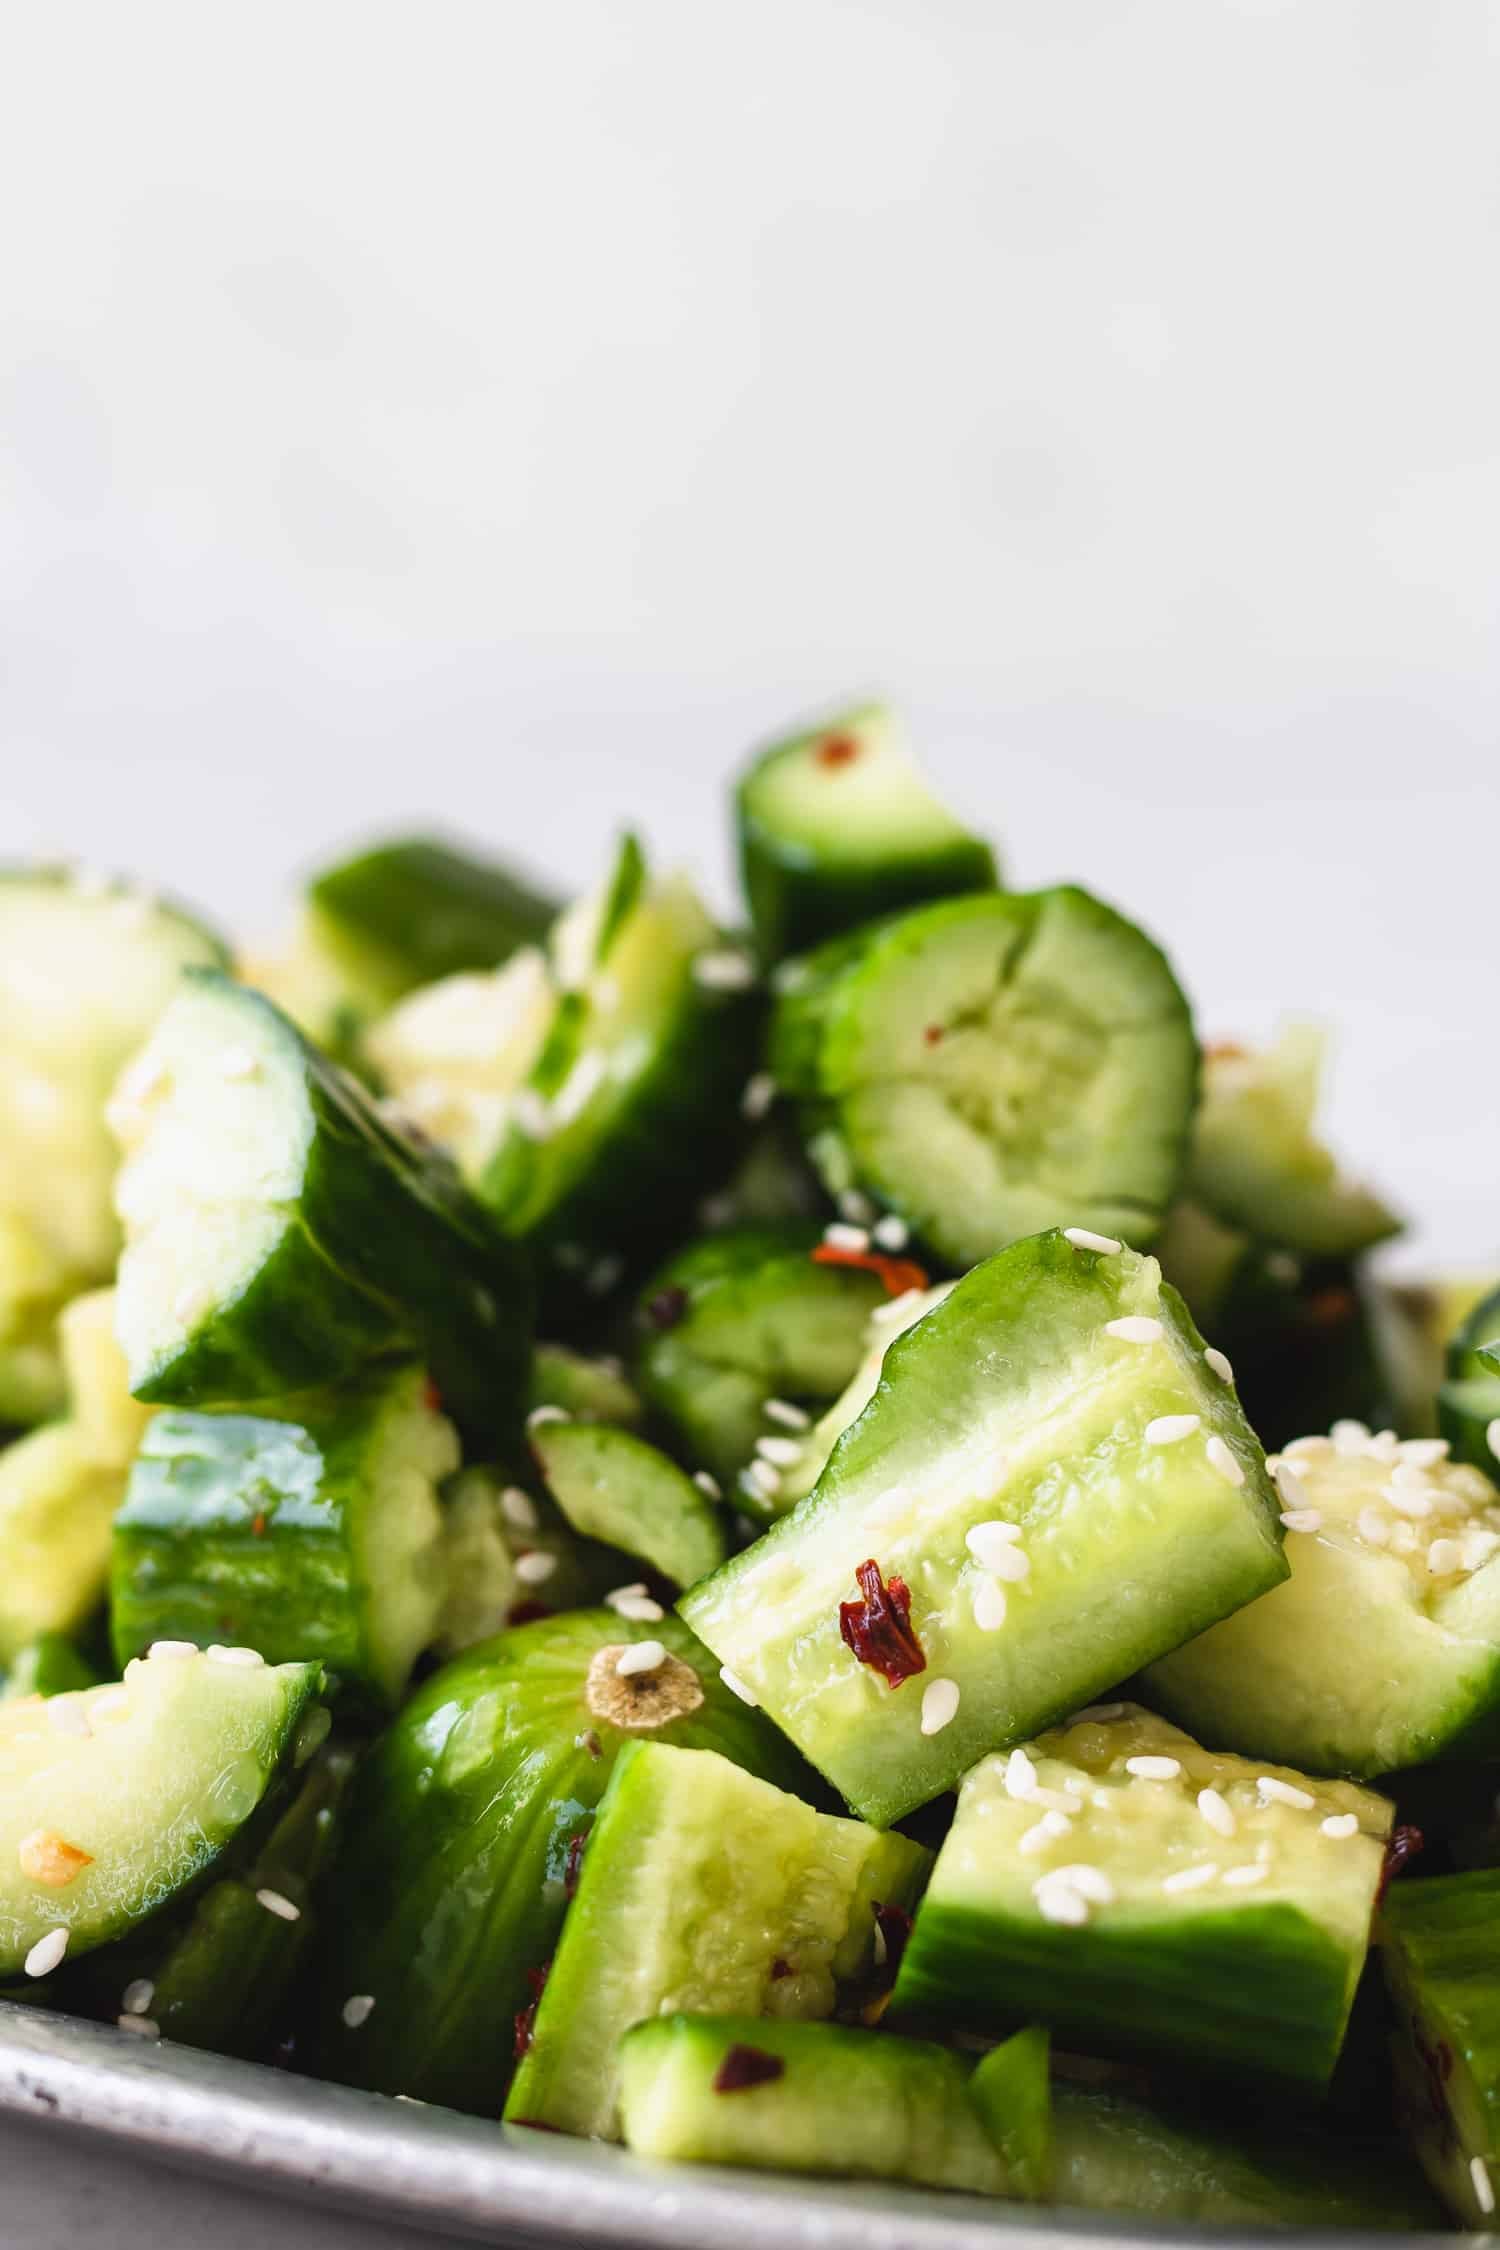 Smashed cucumbers dressed and garnished with sesame seeds